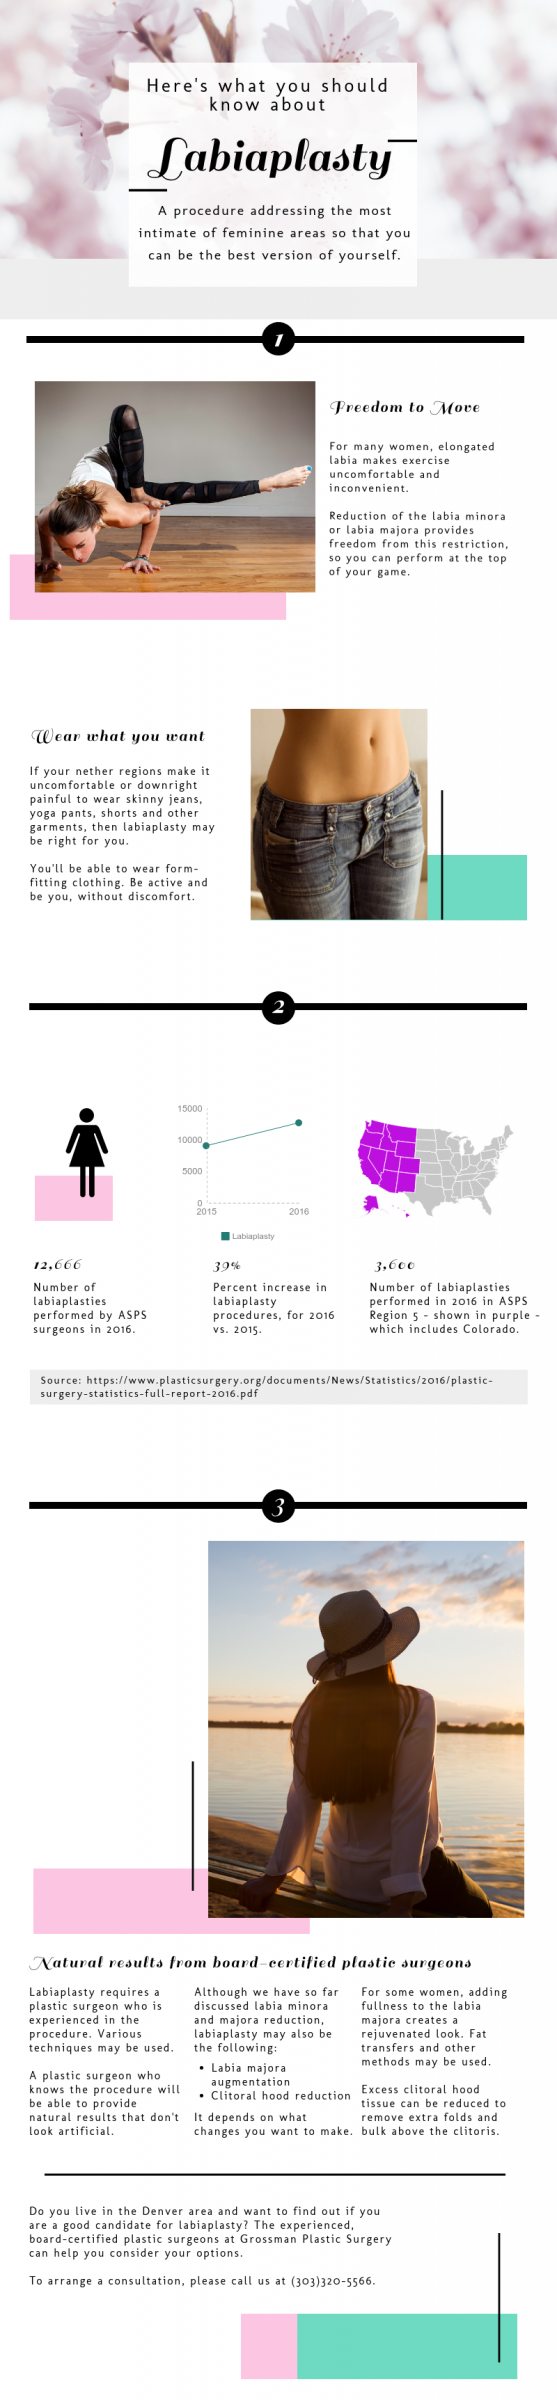 What you Need to know about Labiaplasty - infographic